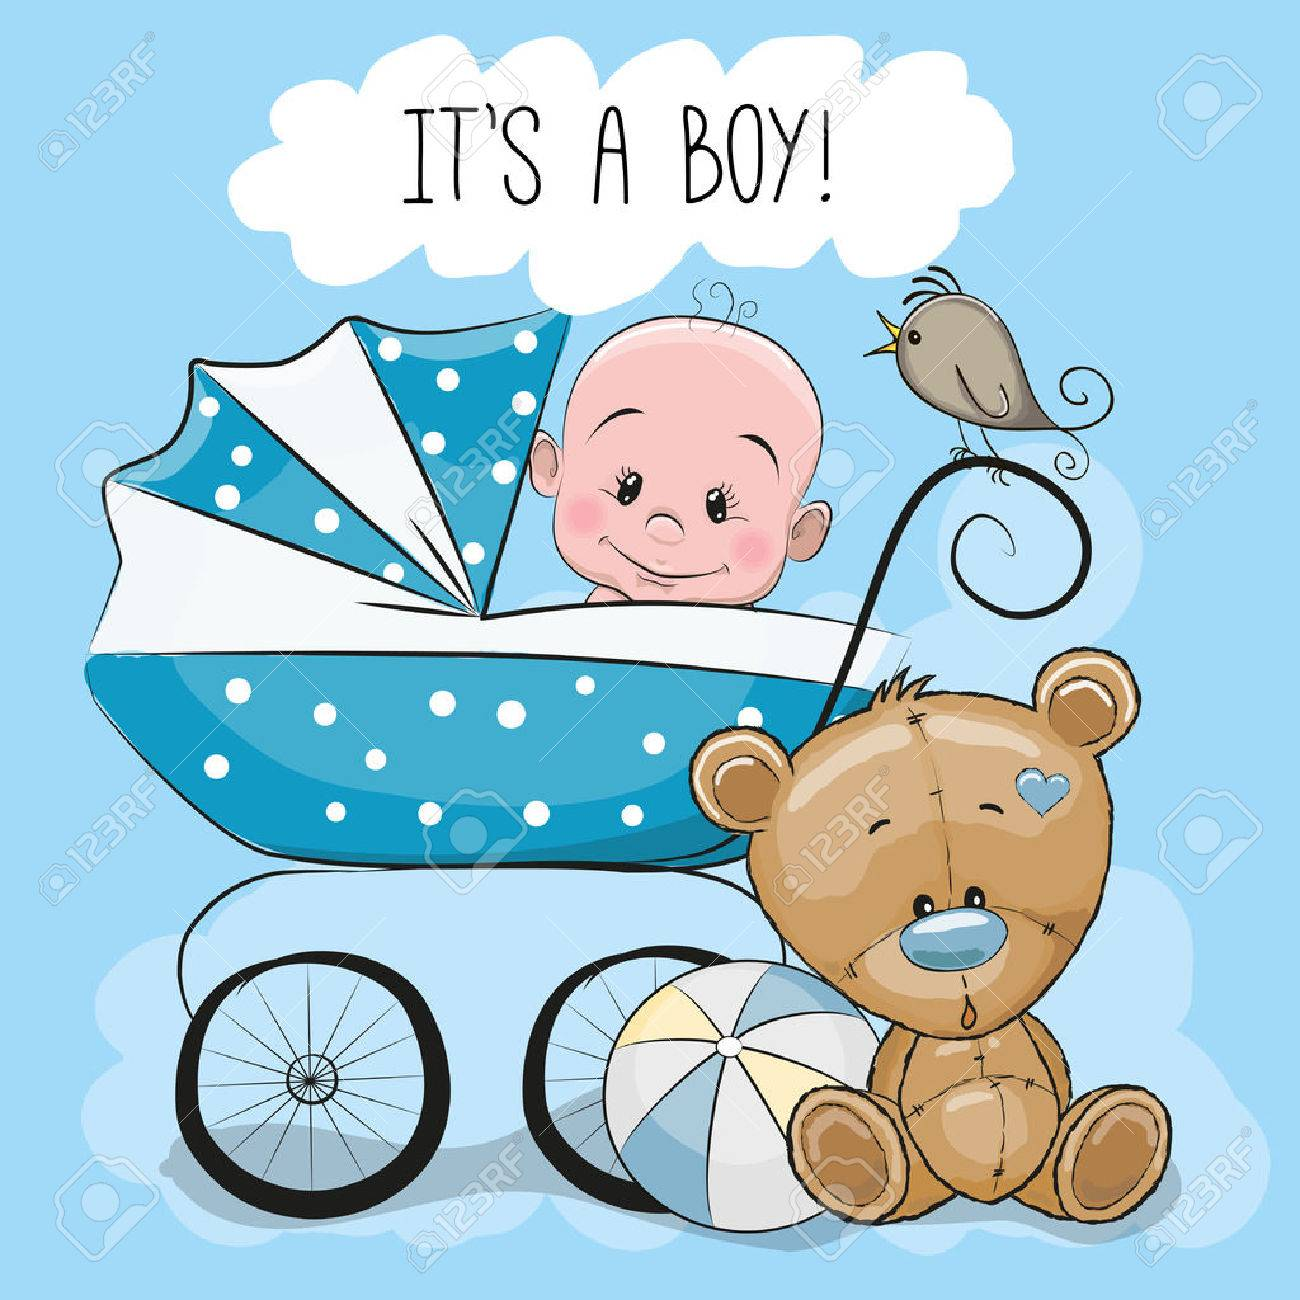 Greeting card its a boy with baby carriage and Teddy Bear - 55043746